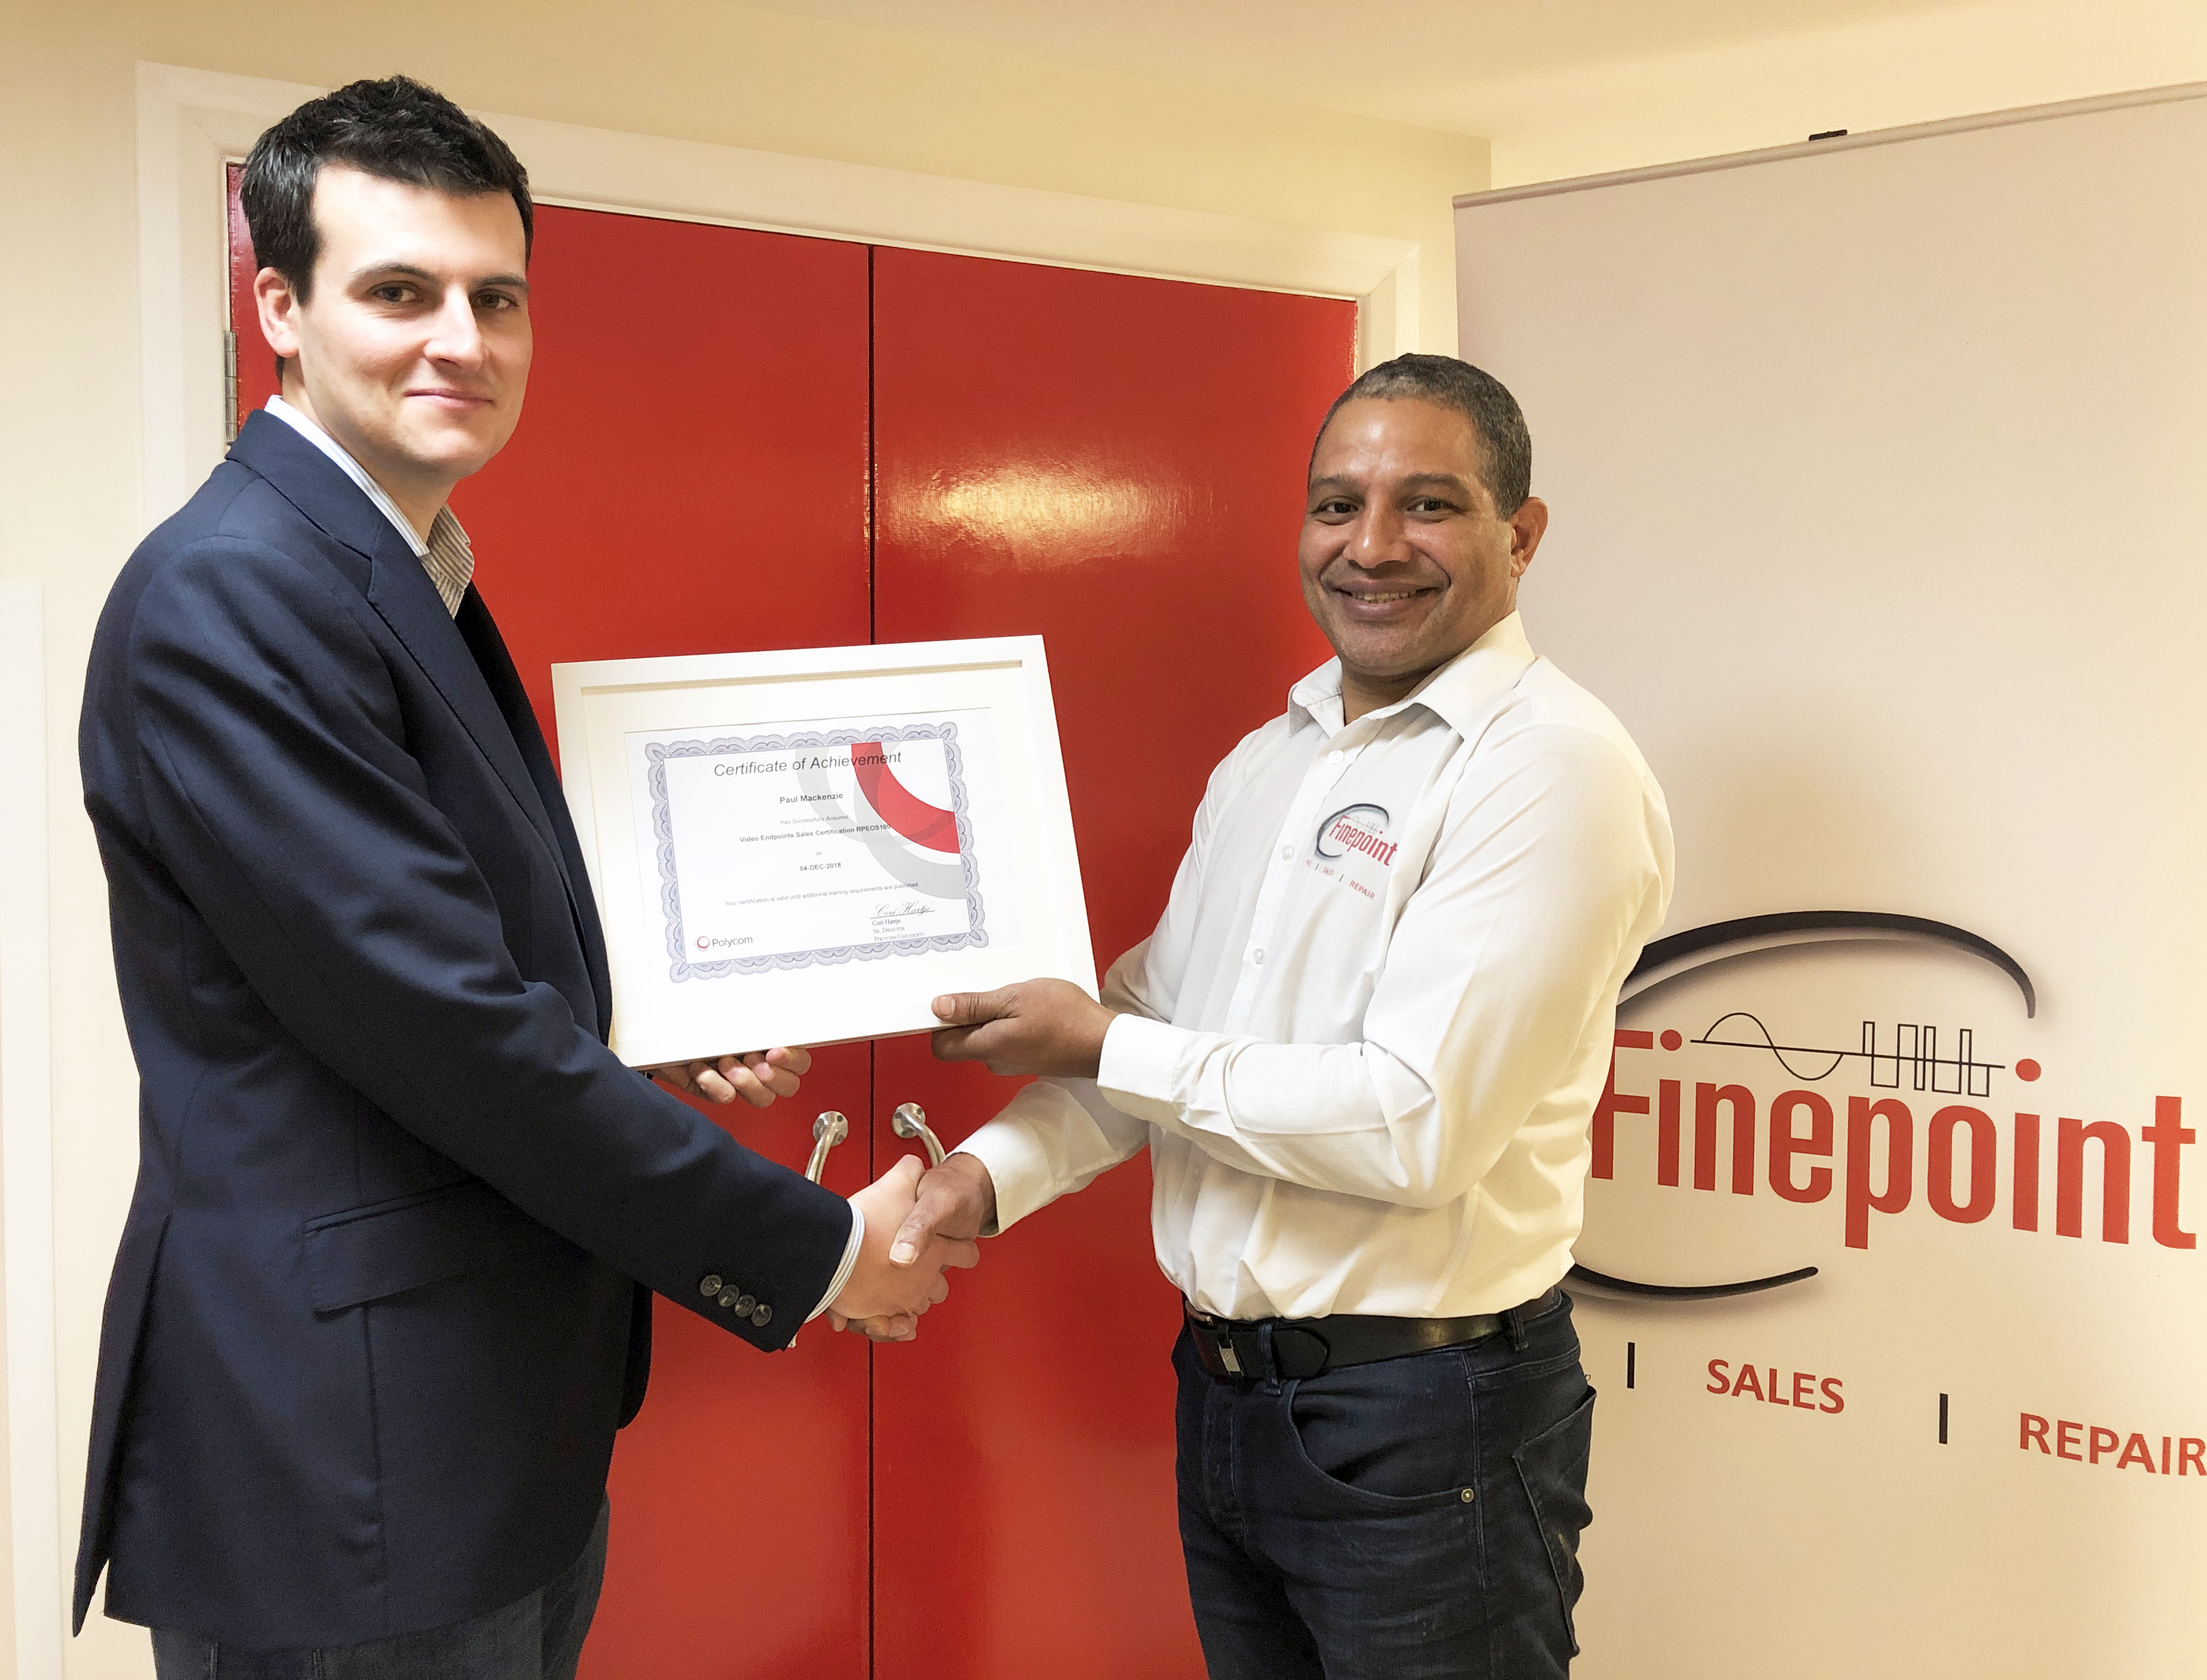 Finepoint AV Division Secures Polycom Video Endpoints Certification